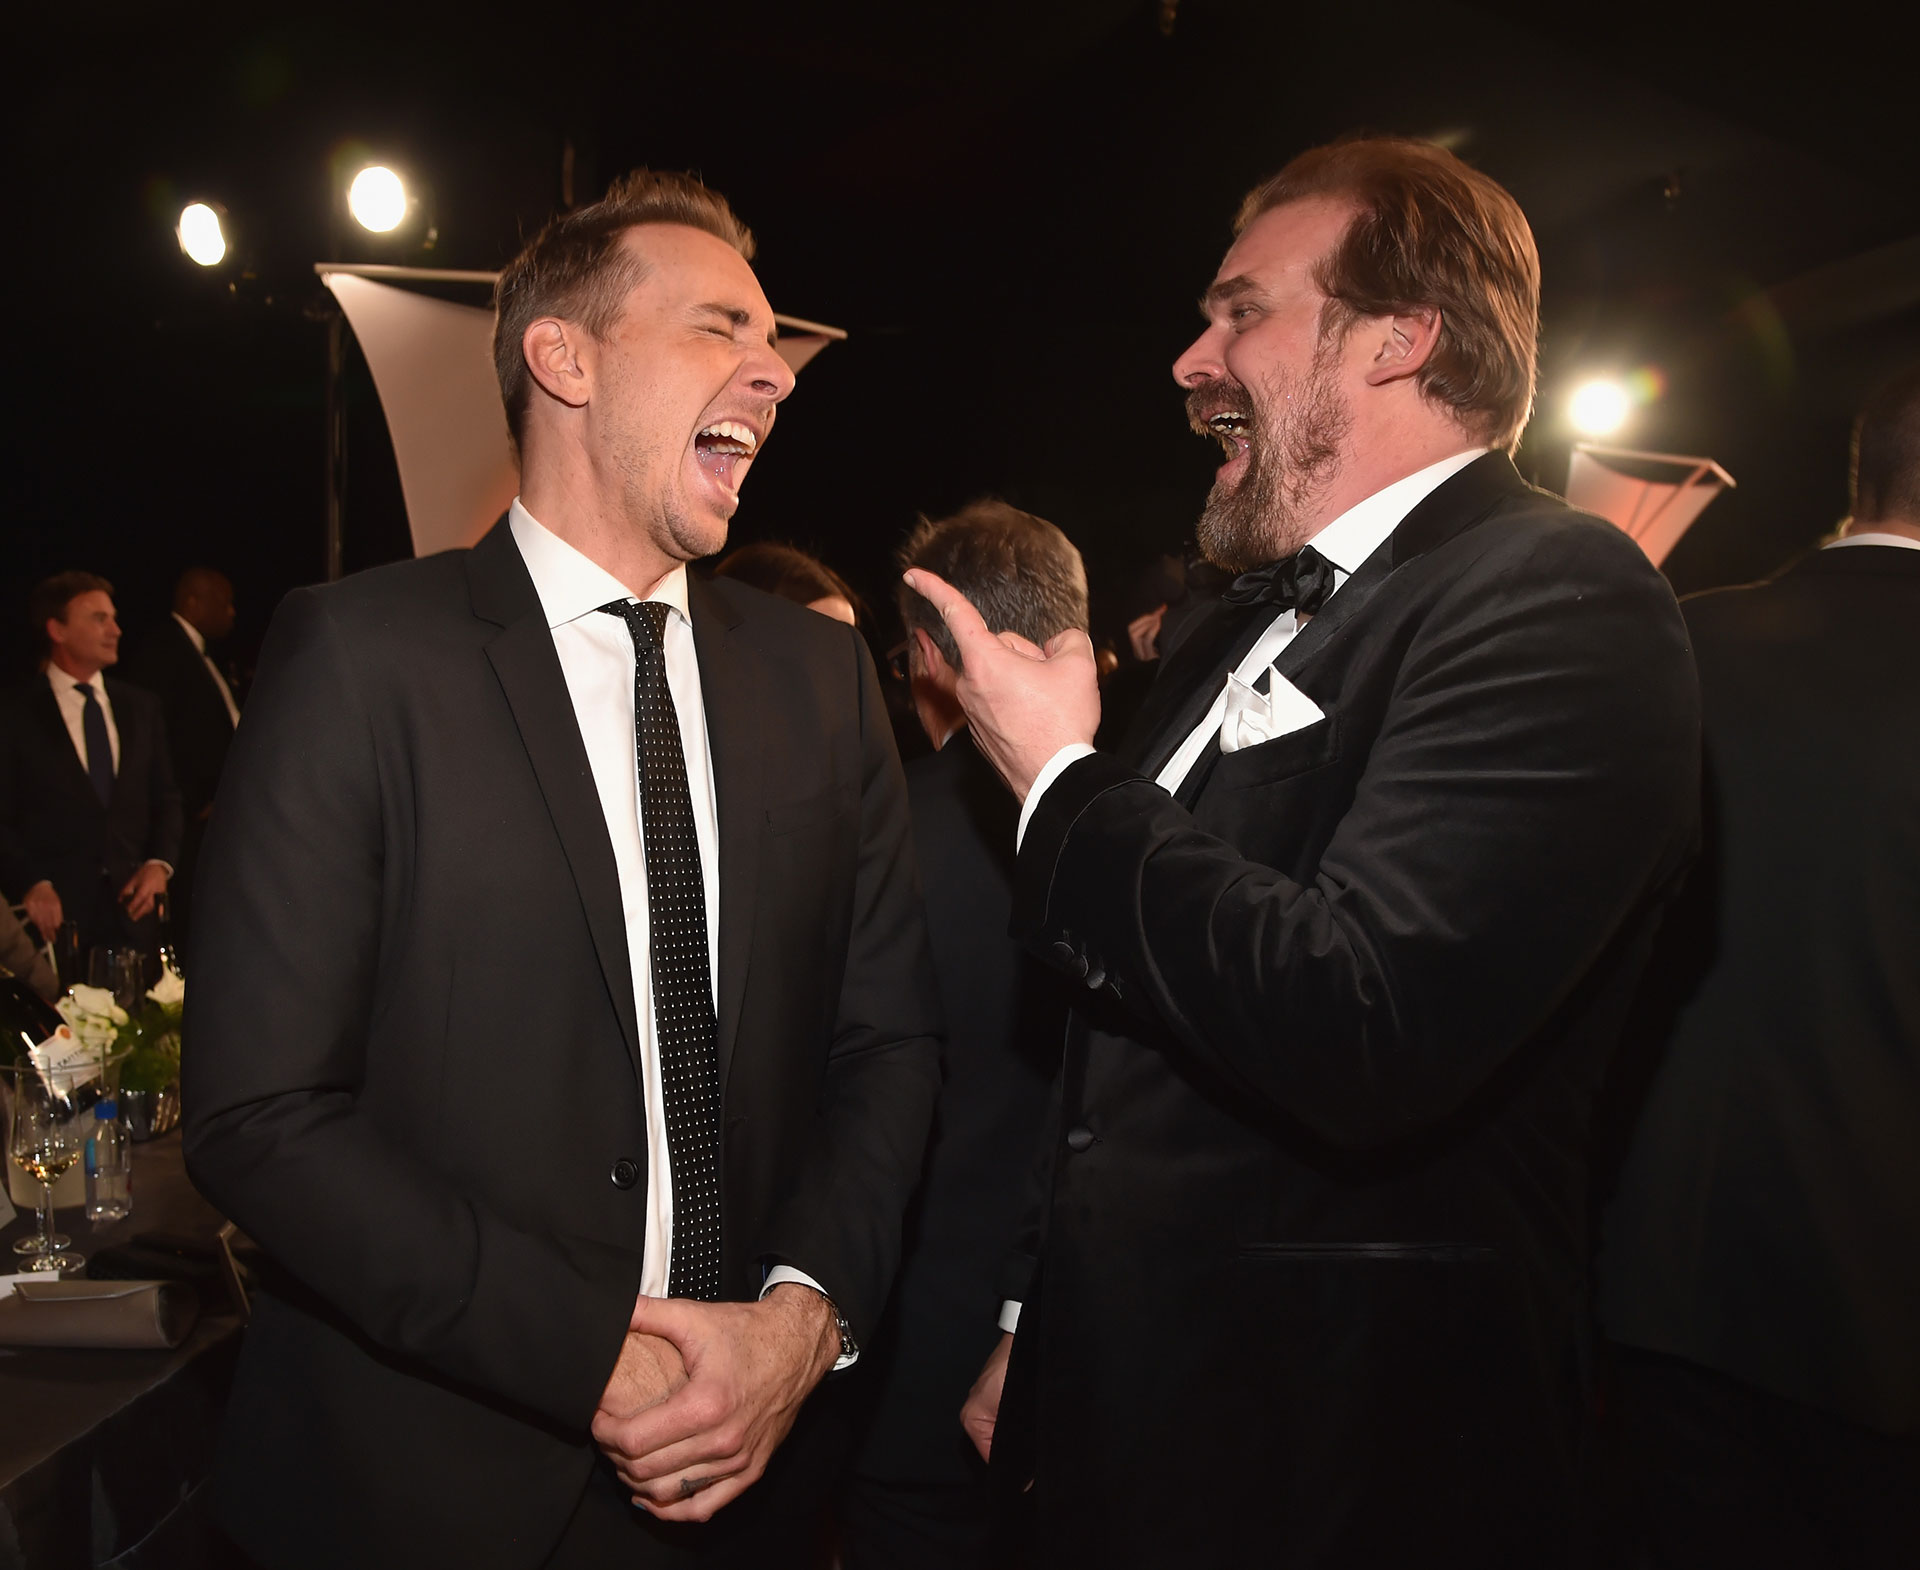 Muertos de risa Dax Shepard y David Harbour. Foto by Kevin Mazur Getty Images for Turner Image.